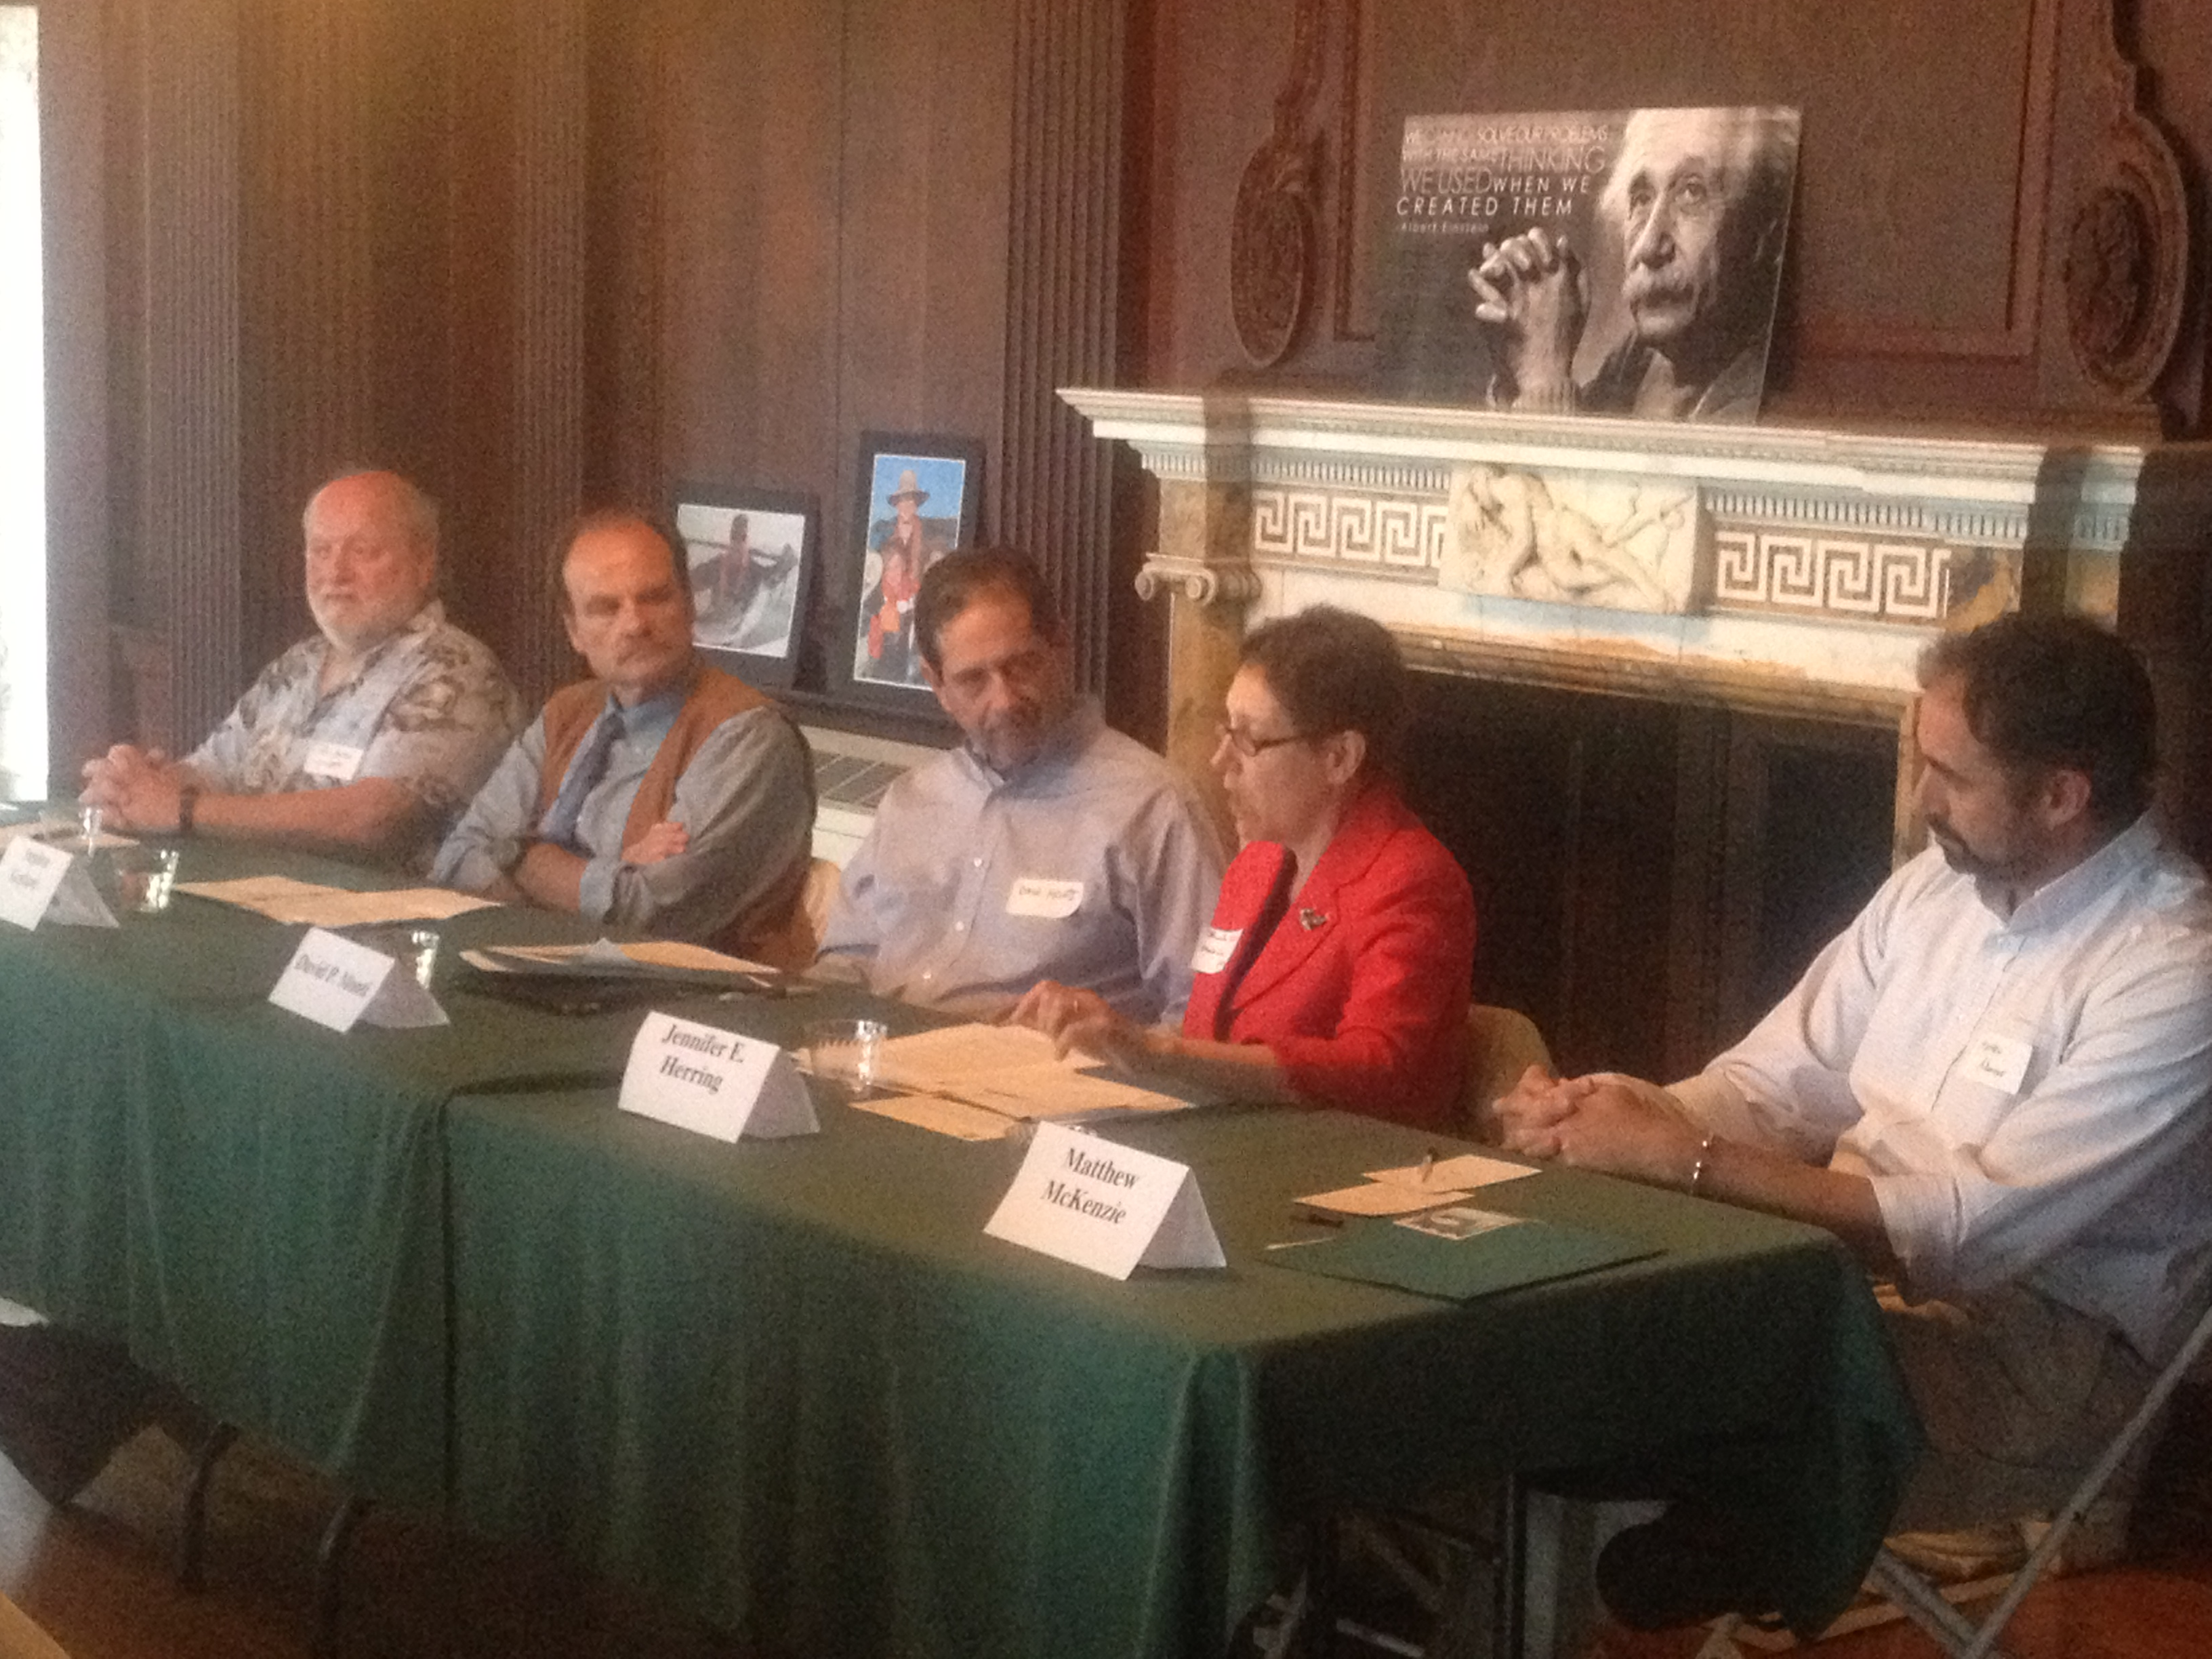 Forum panelists spoke about the need for an abundance of fish in our oceans, rivers, and Long Island Sound.